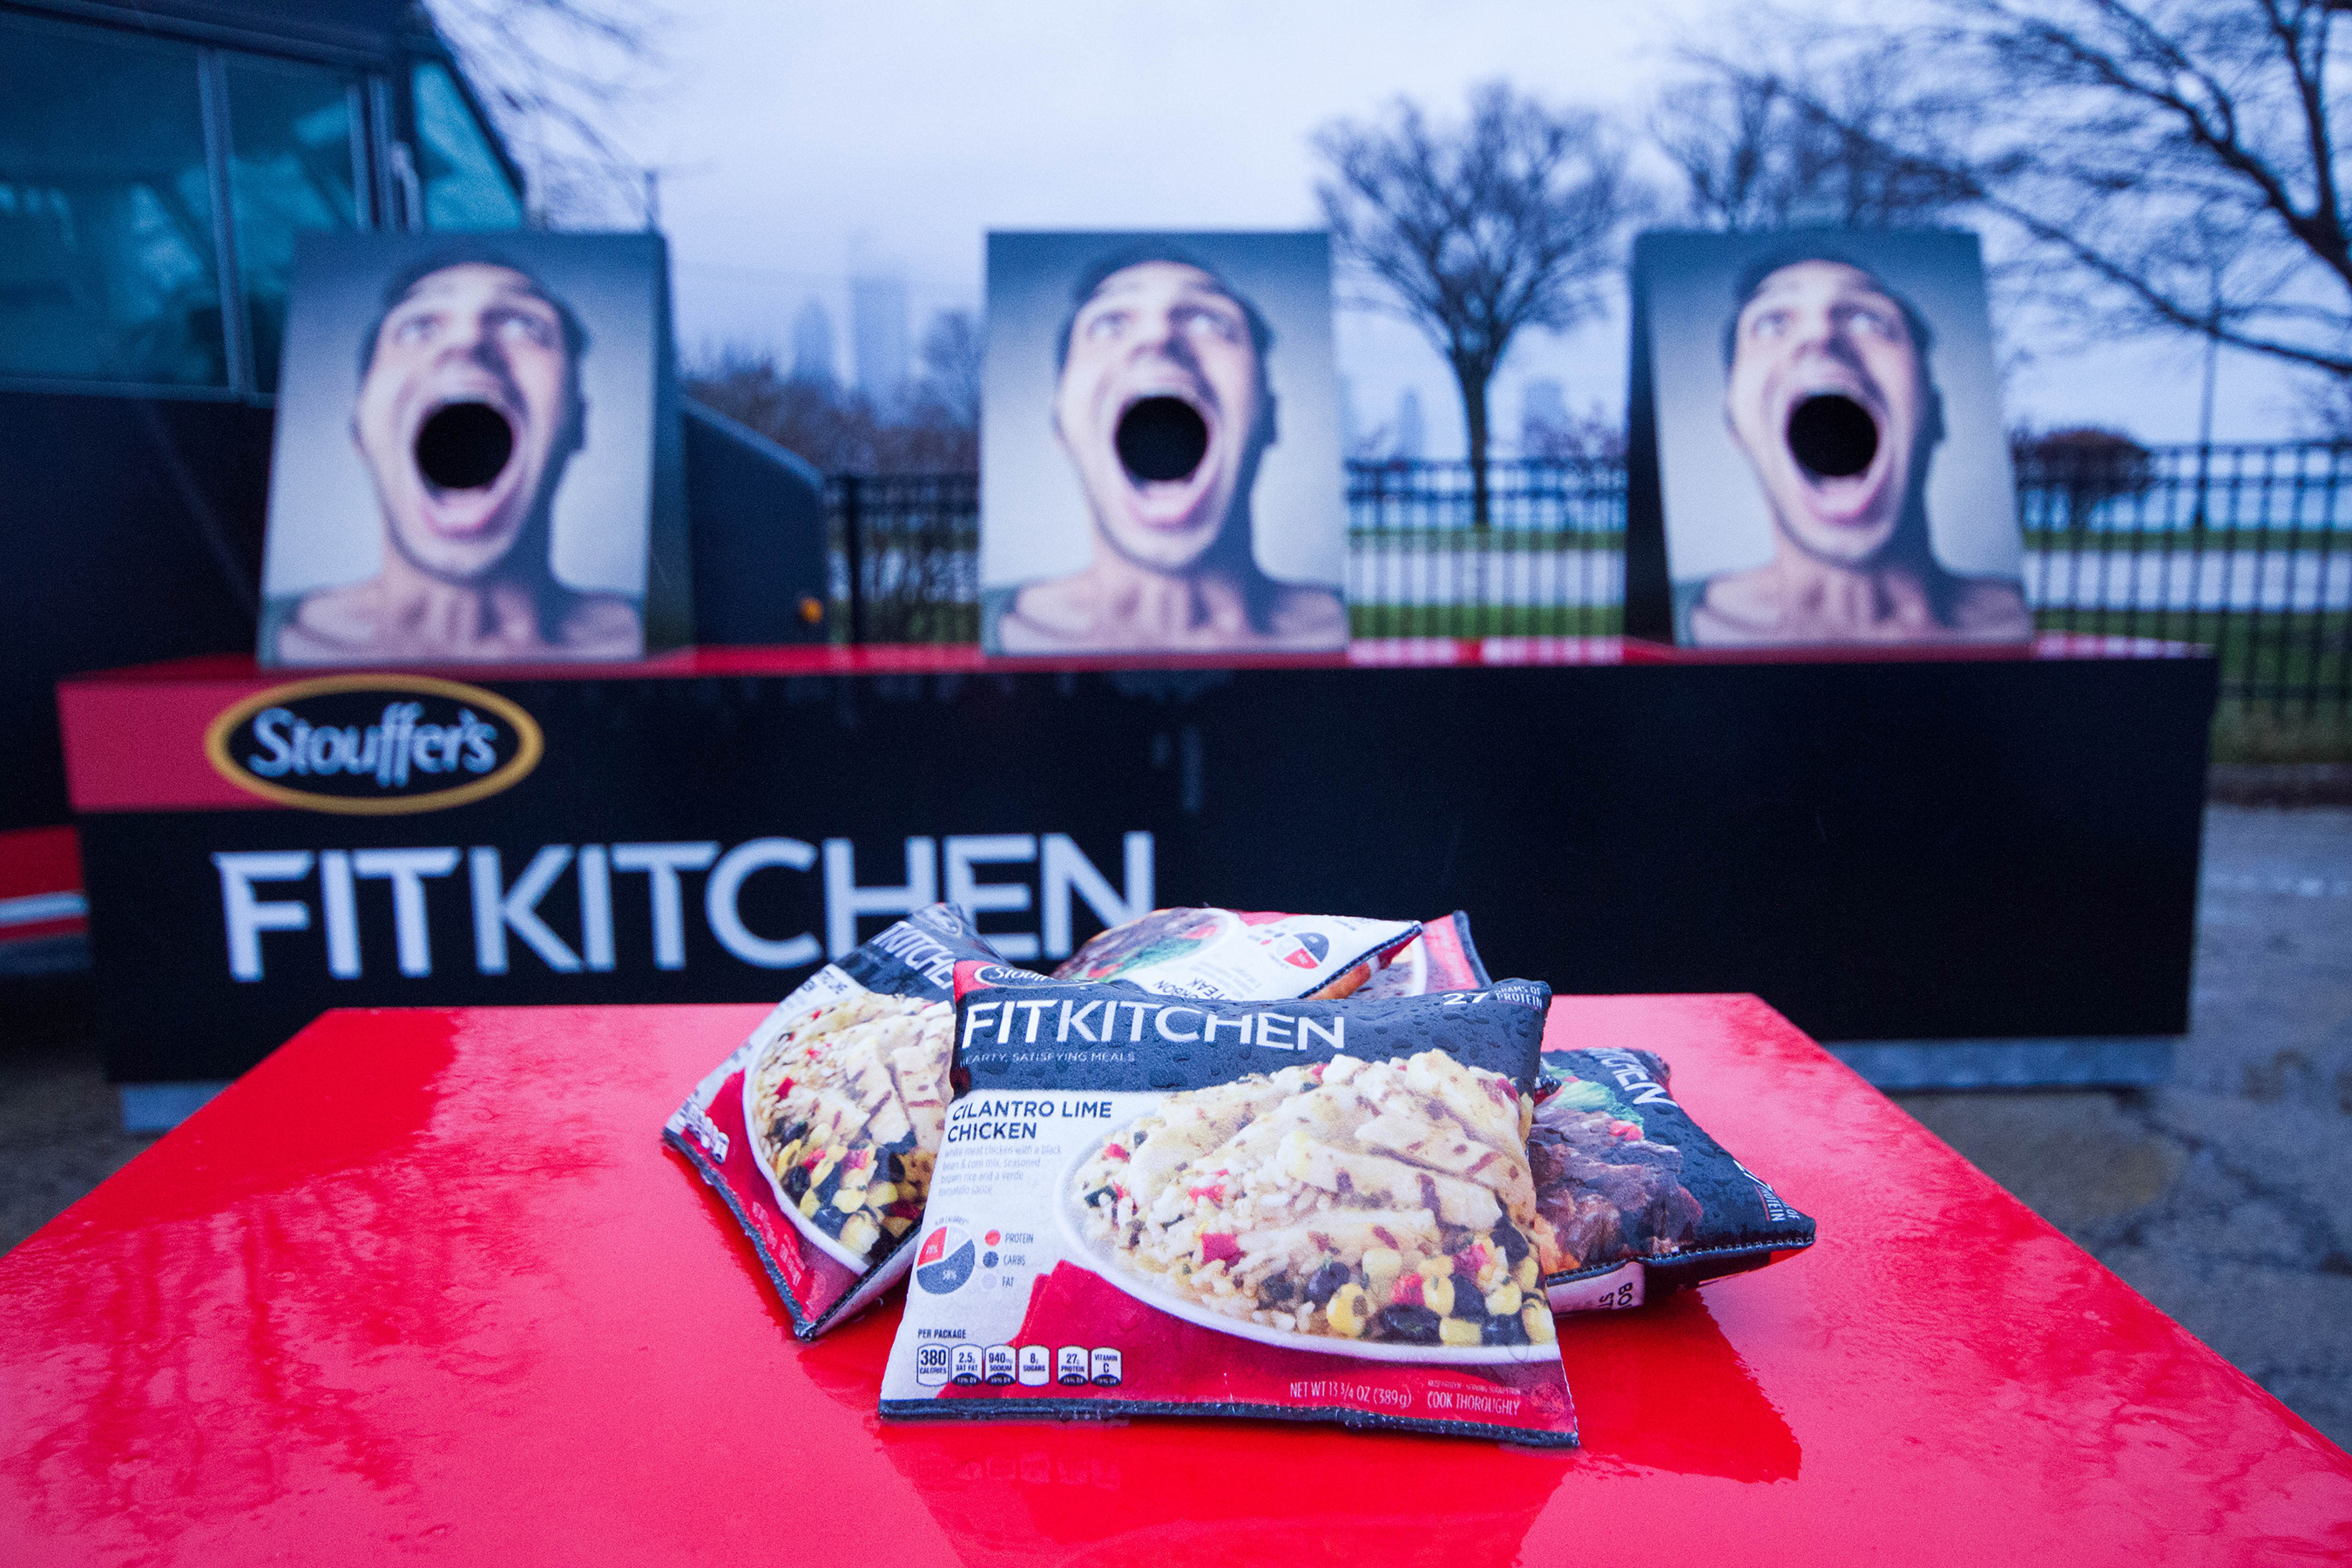 Stouffer's Fit Kitchen: Tailgate Takeover Brings Games to Fans in Chicago